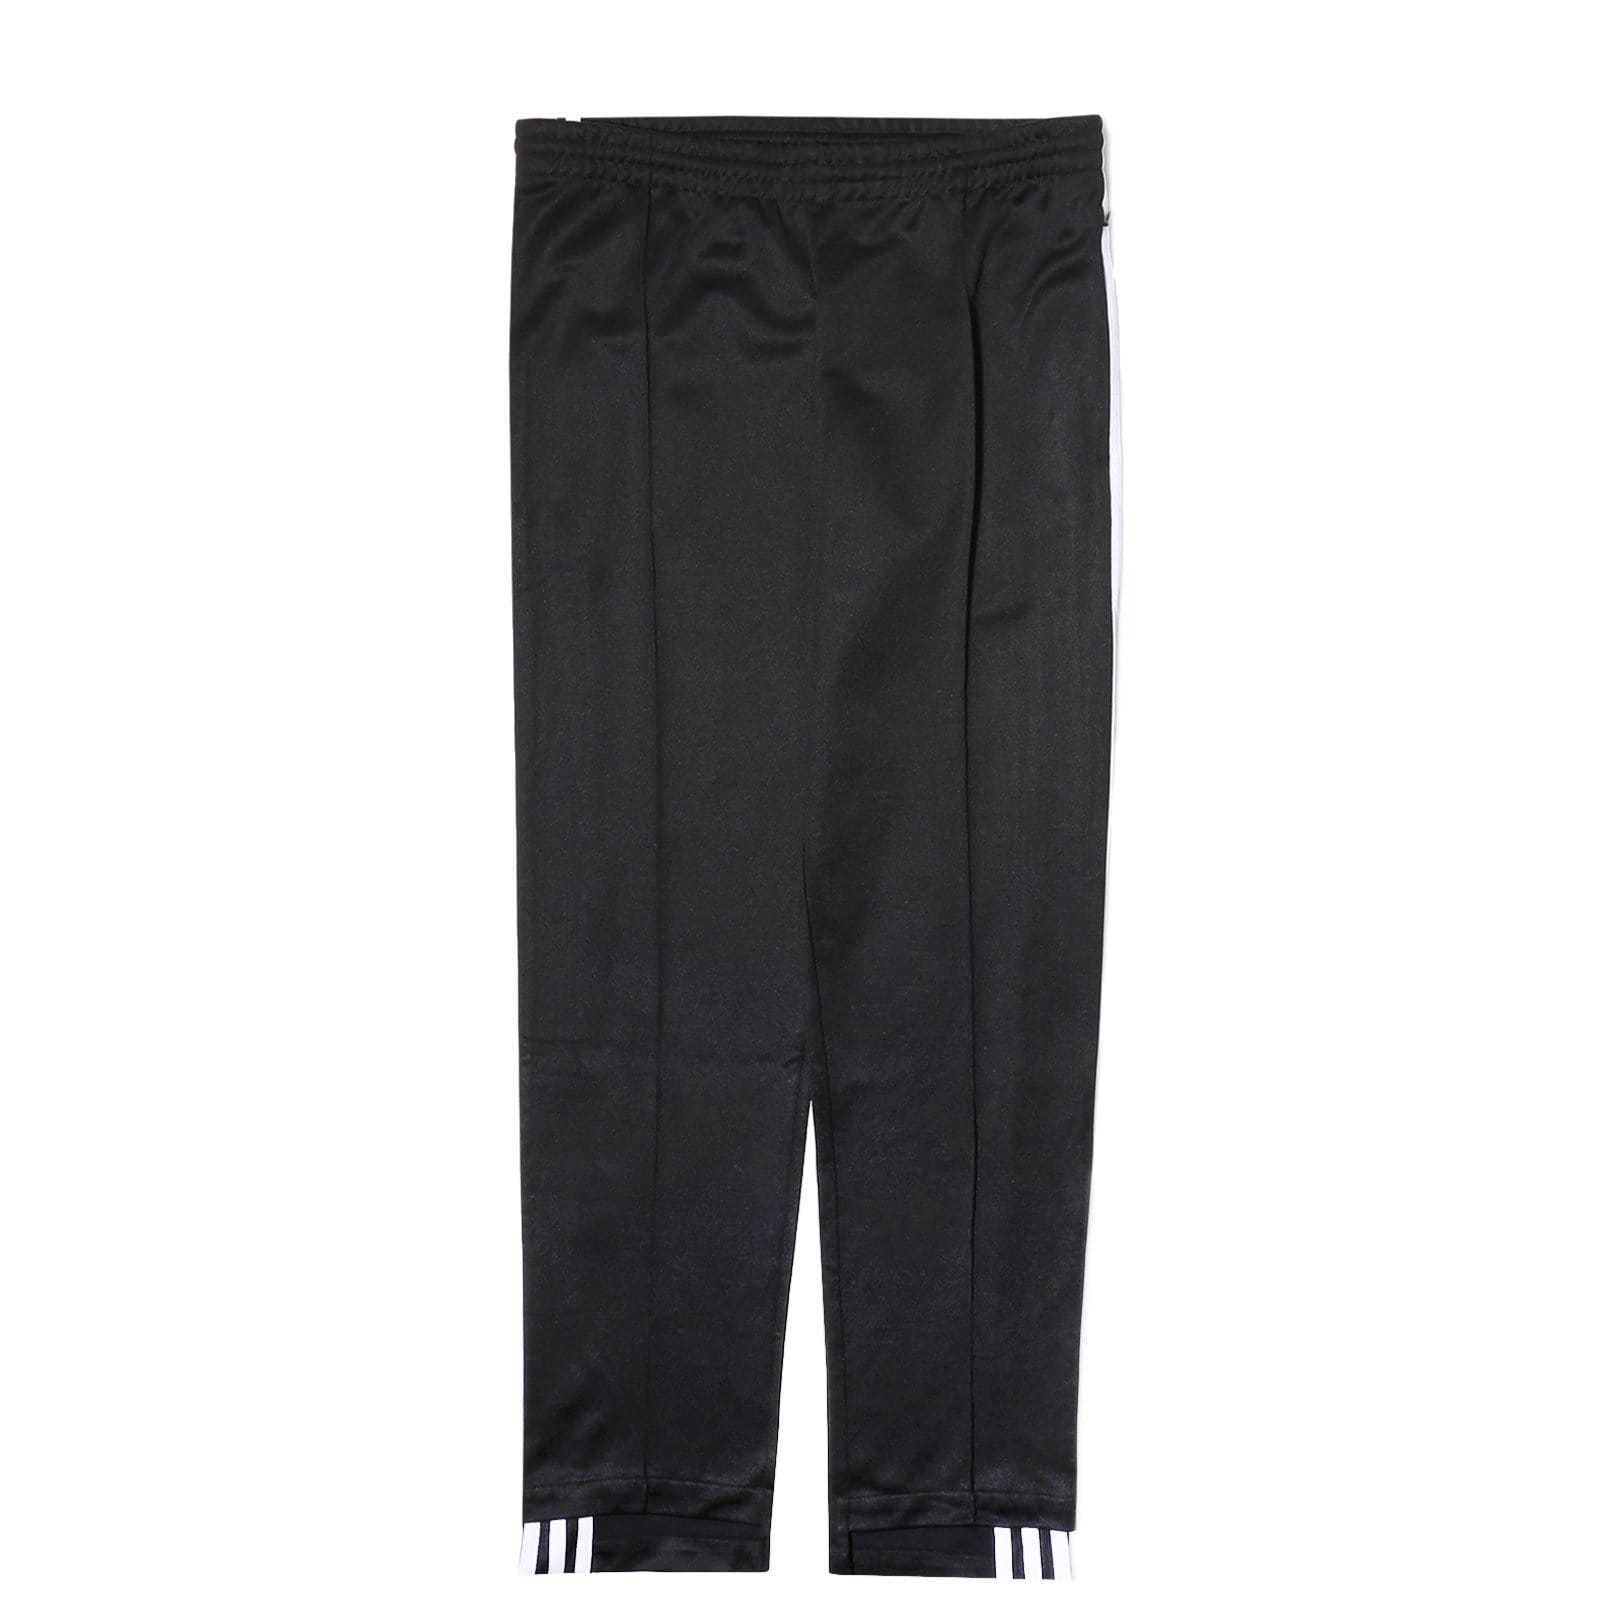 Adidas Bottoms Women's x Naked Track Pants